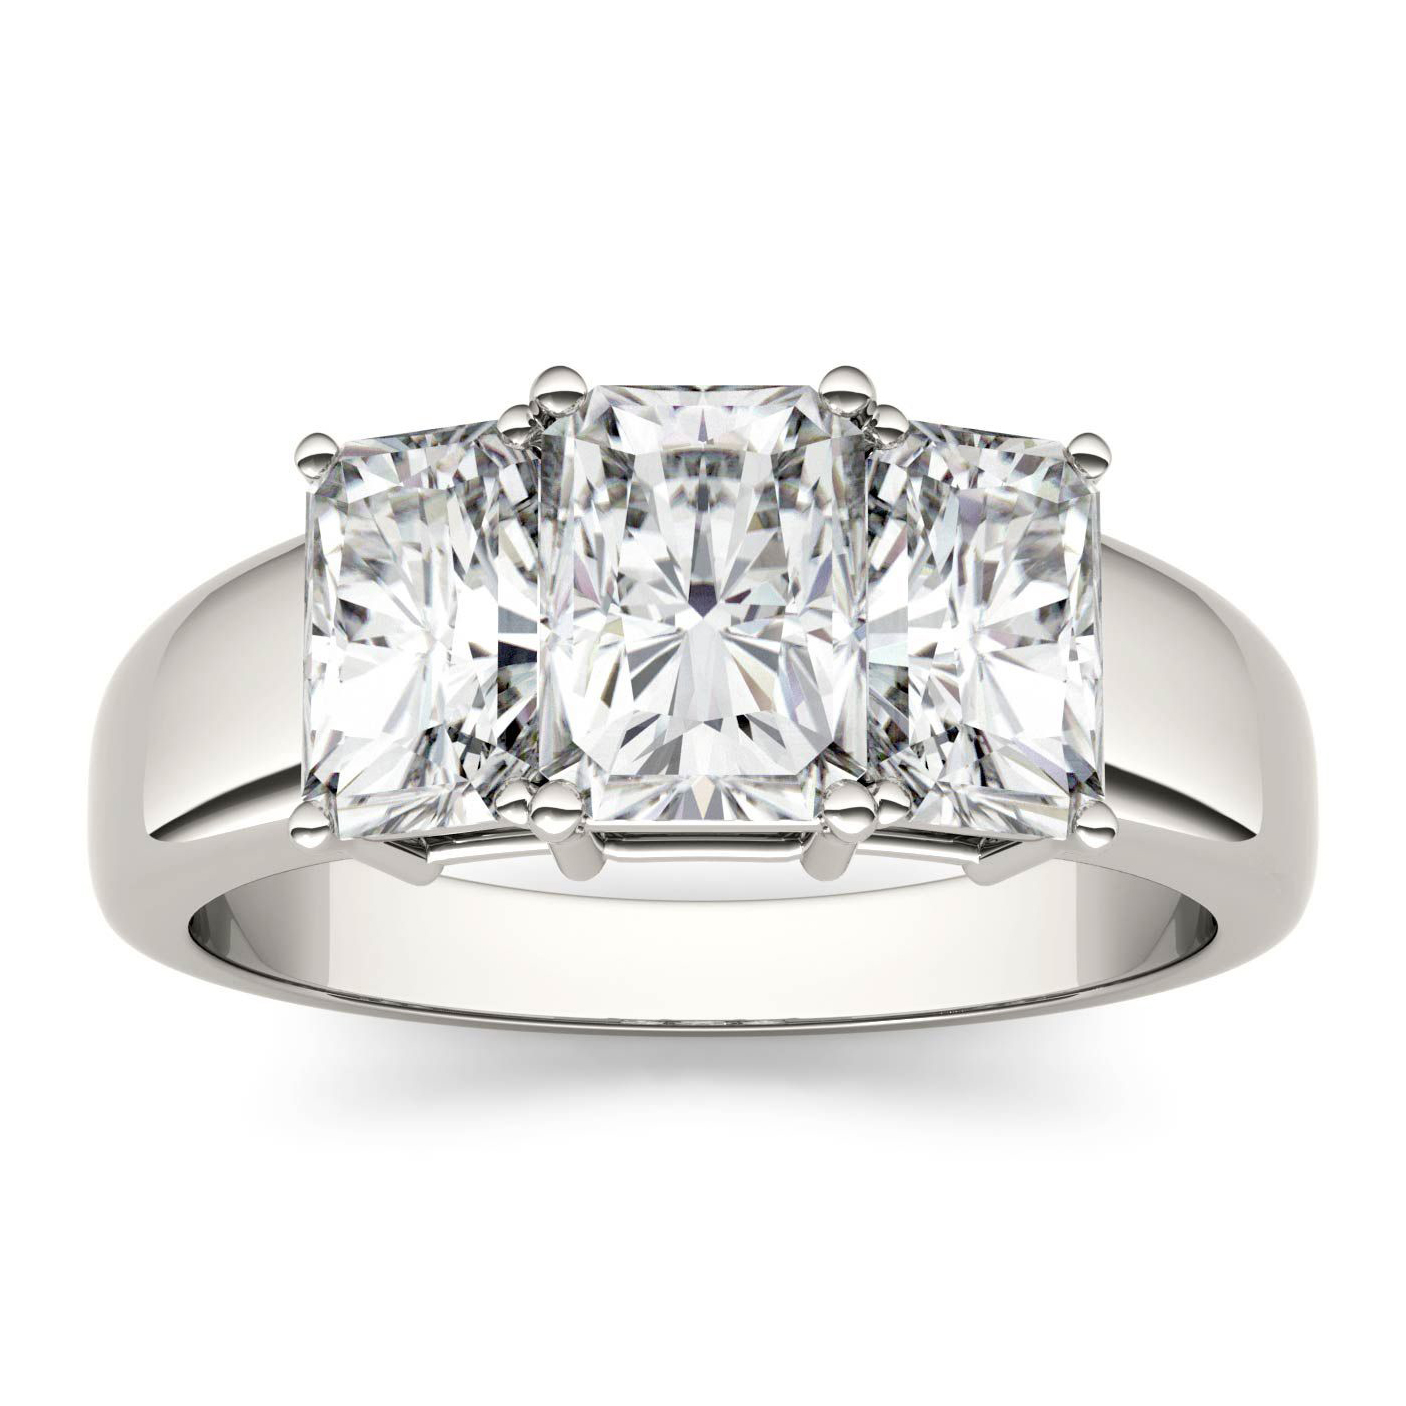 Charles & Colvard Forever One Moissanite Engagement Ring in 14K White Gold